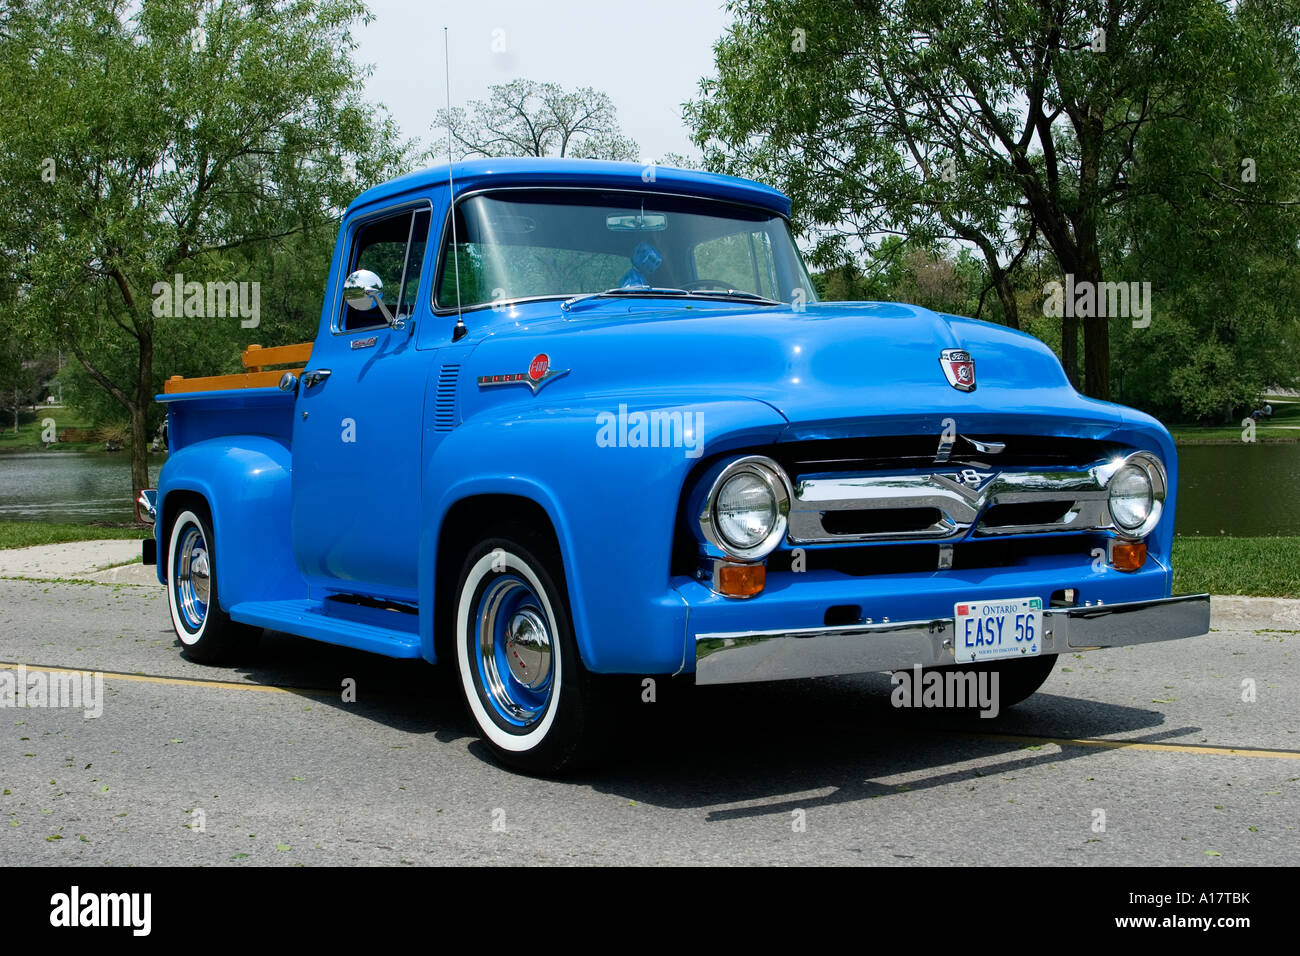 hight resolution of 1956 ford f100 custom cab pickup truck on pavement stock image